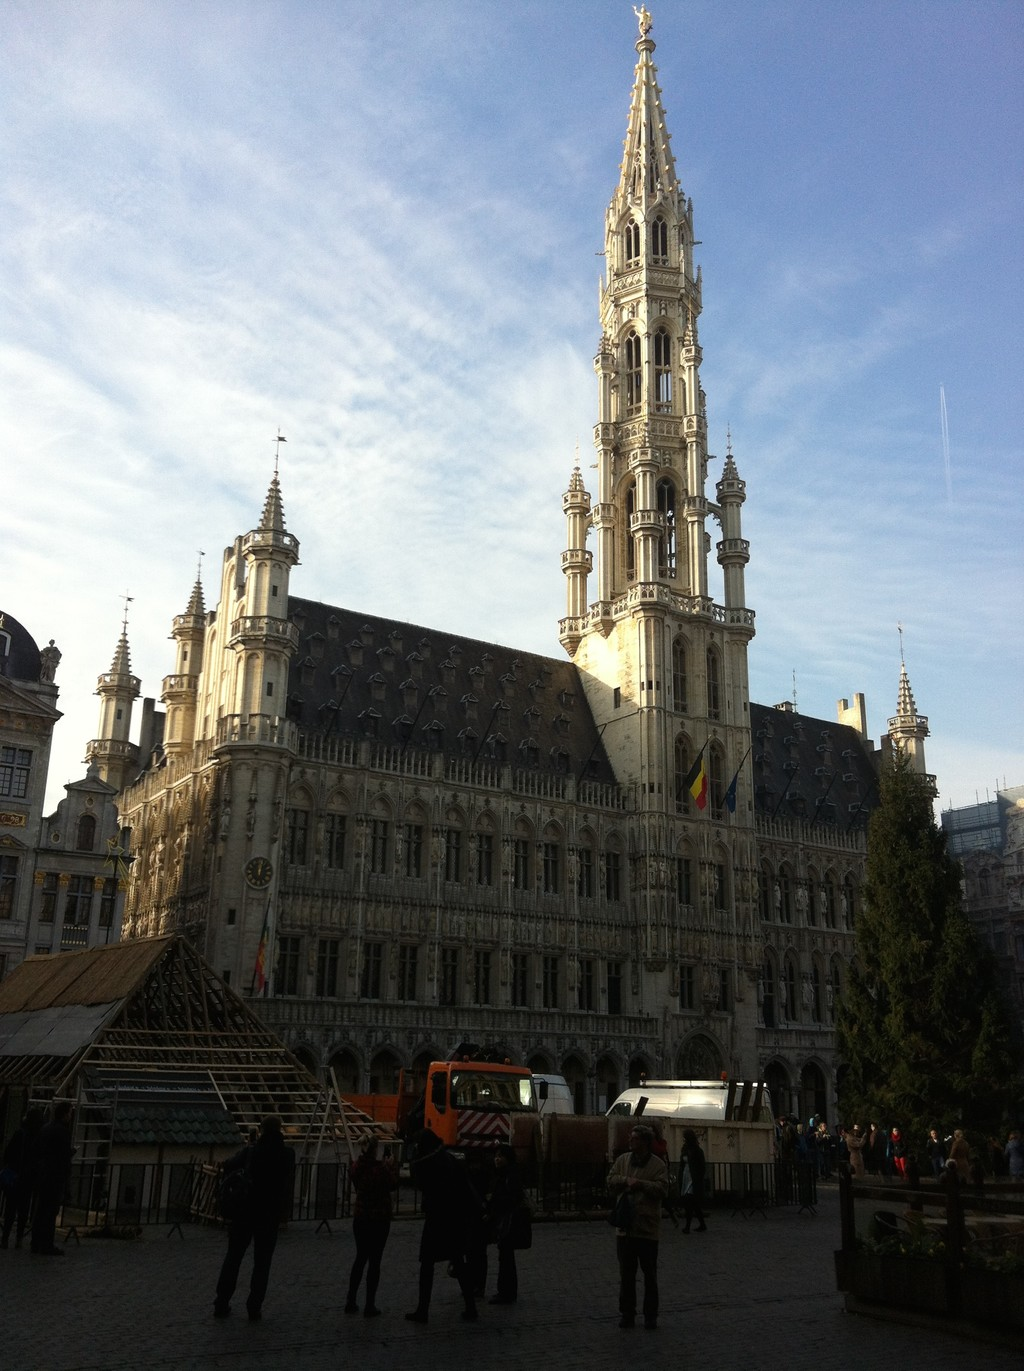 BRUSSELS STOP OVER